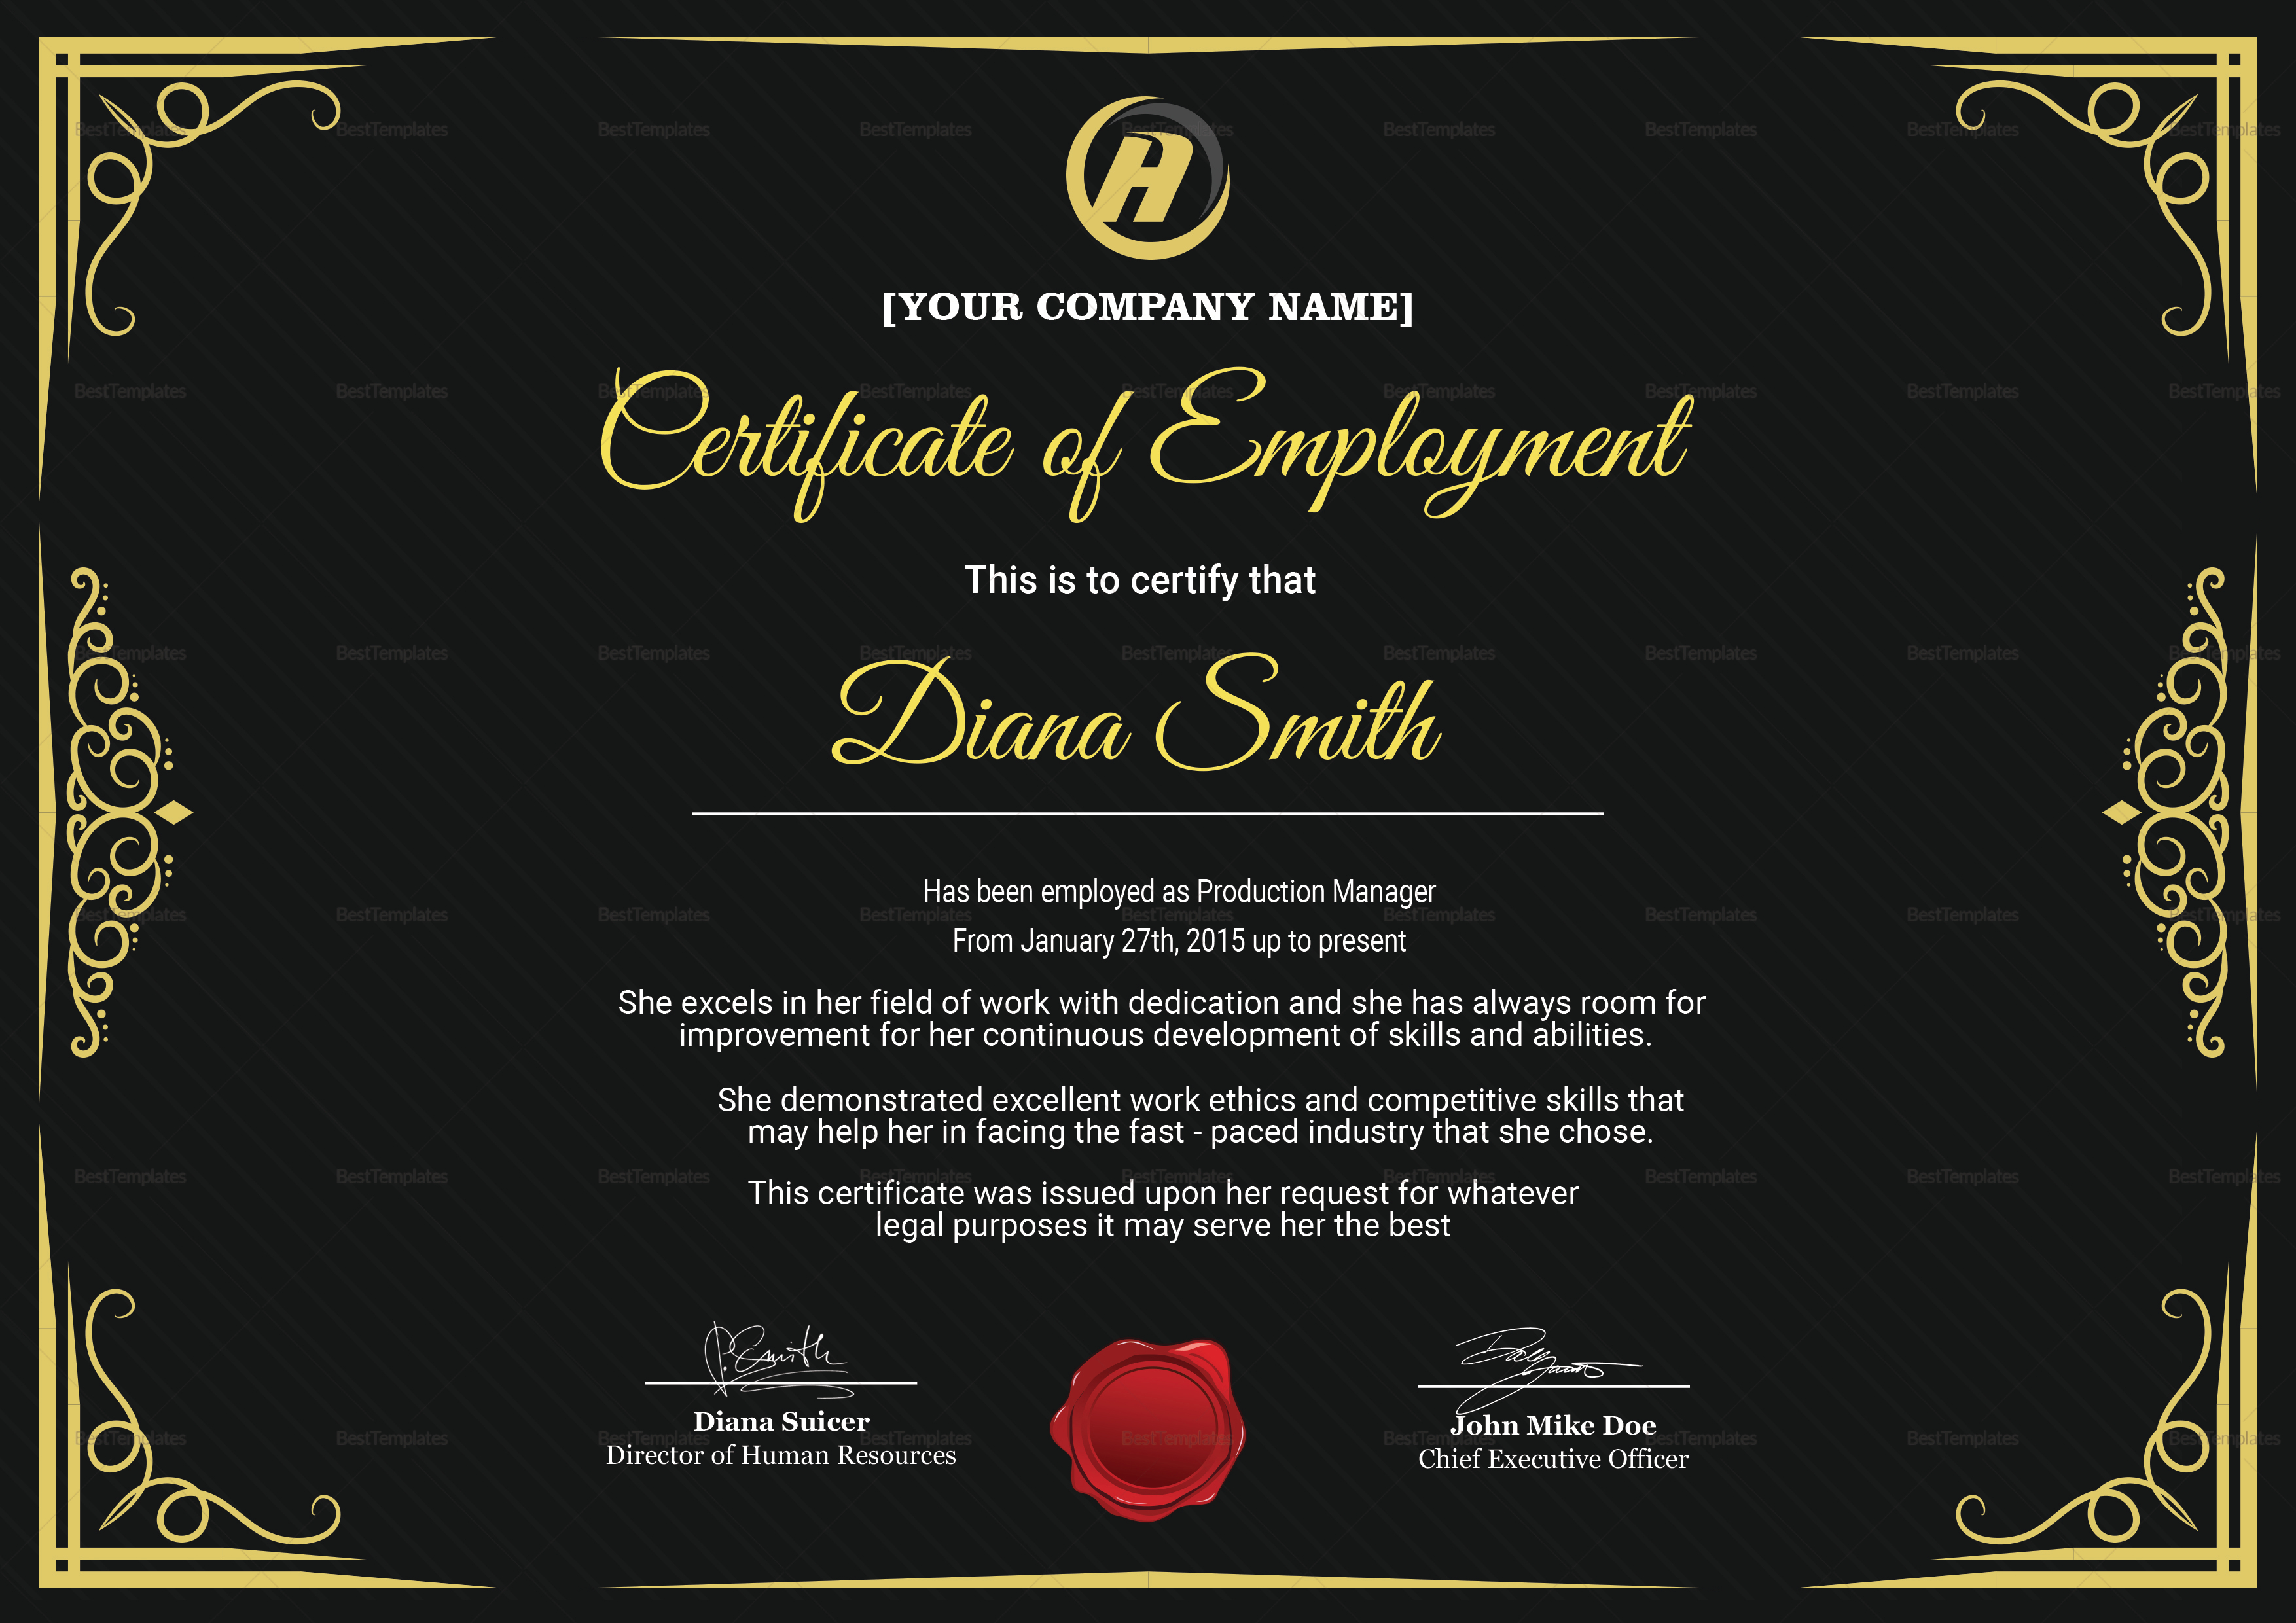 Qualified Employment Certificate Template